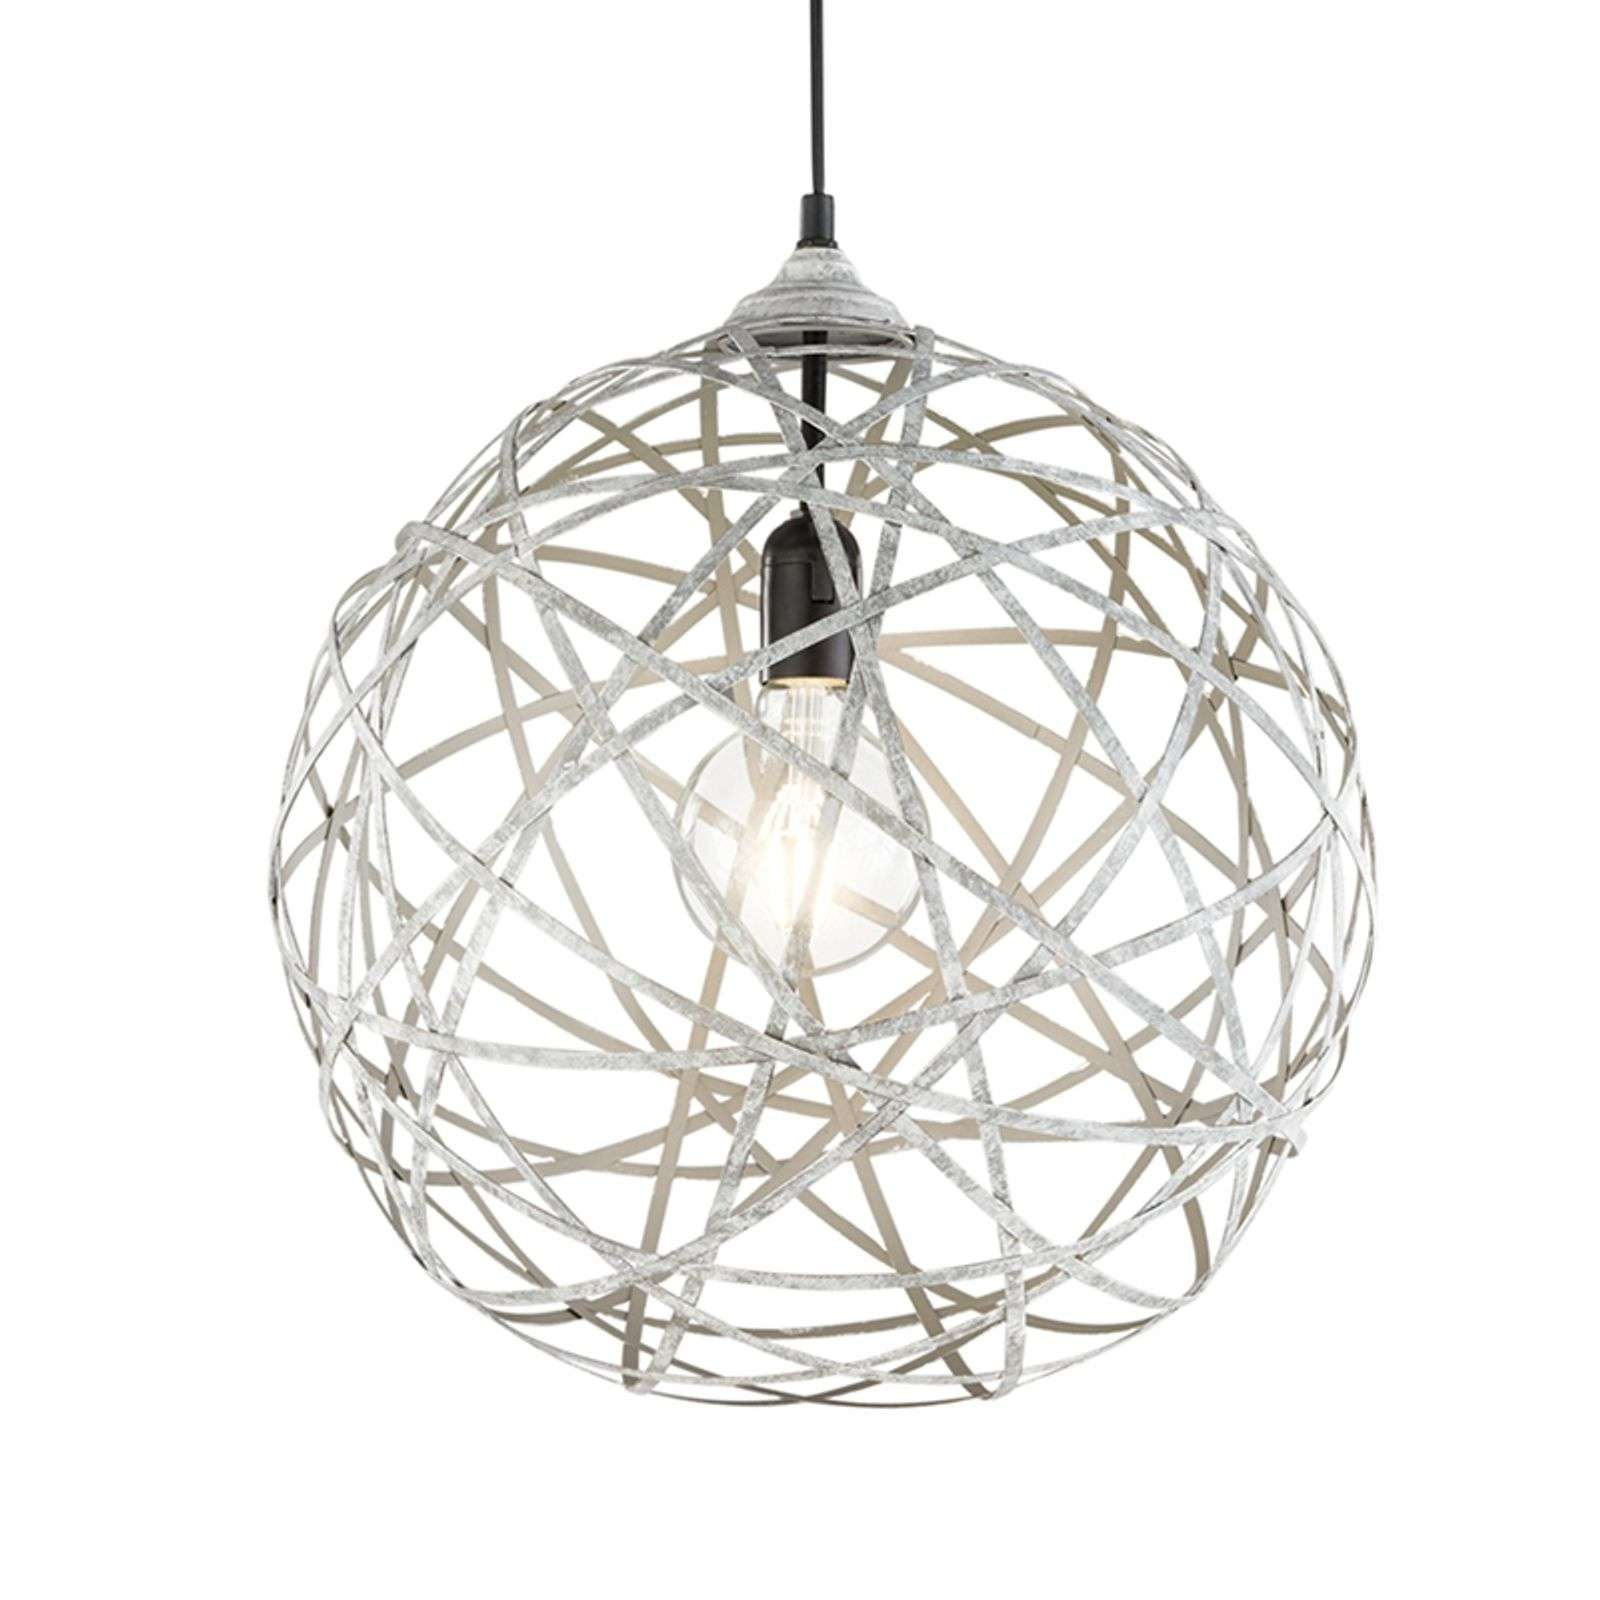 Très belle suspension Jacob, gris antique